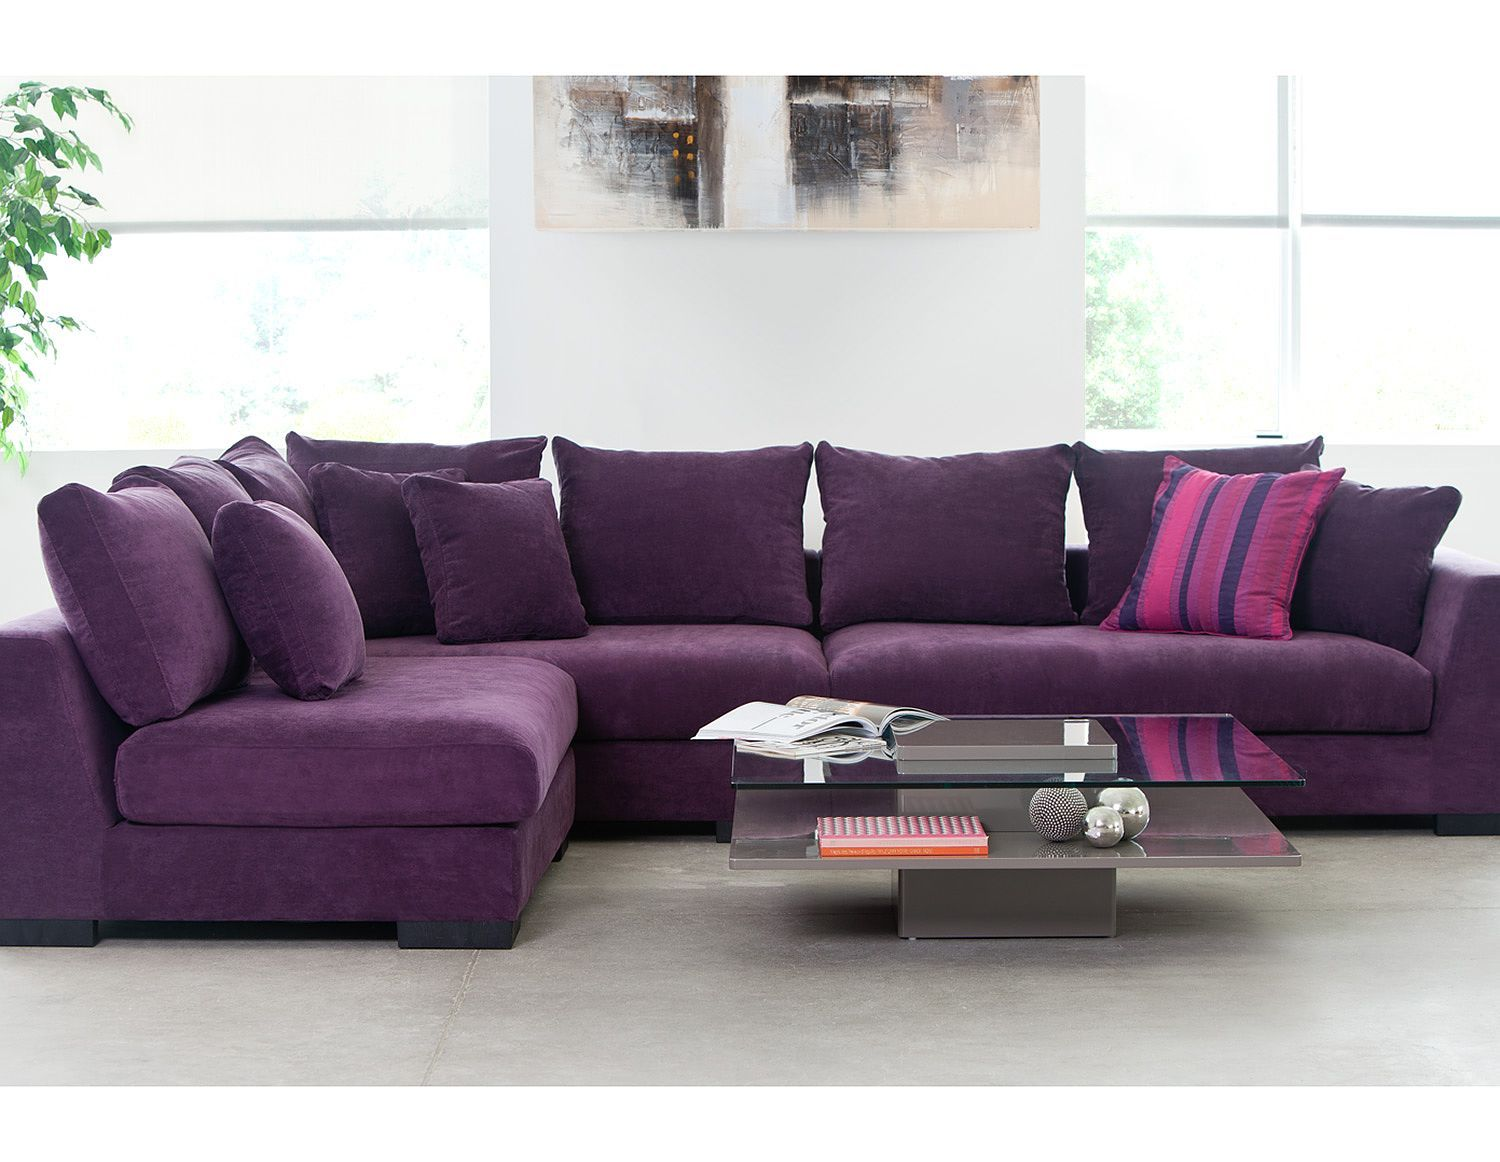 Living Room Sectional Sofas Cooper Purple Faints A Couch In One Of My Favorite Colors